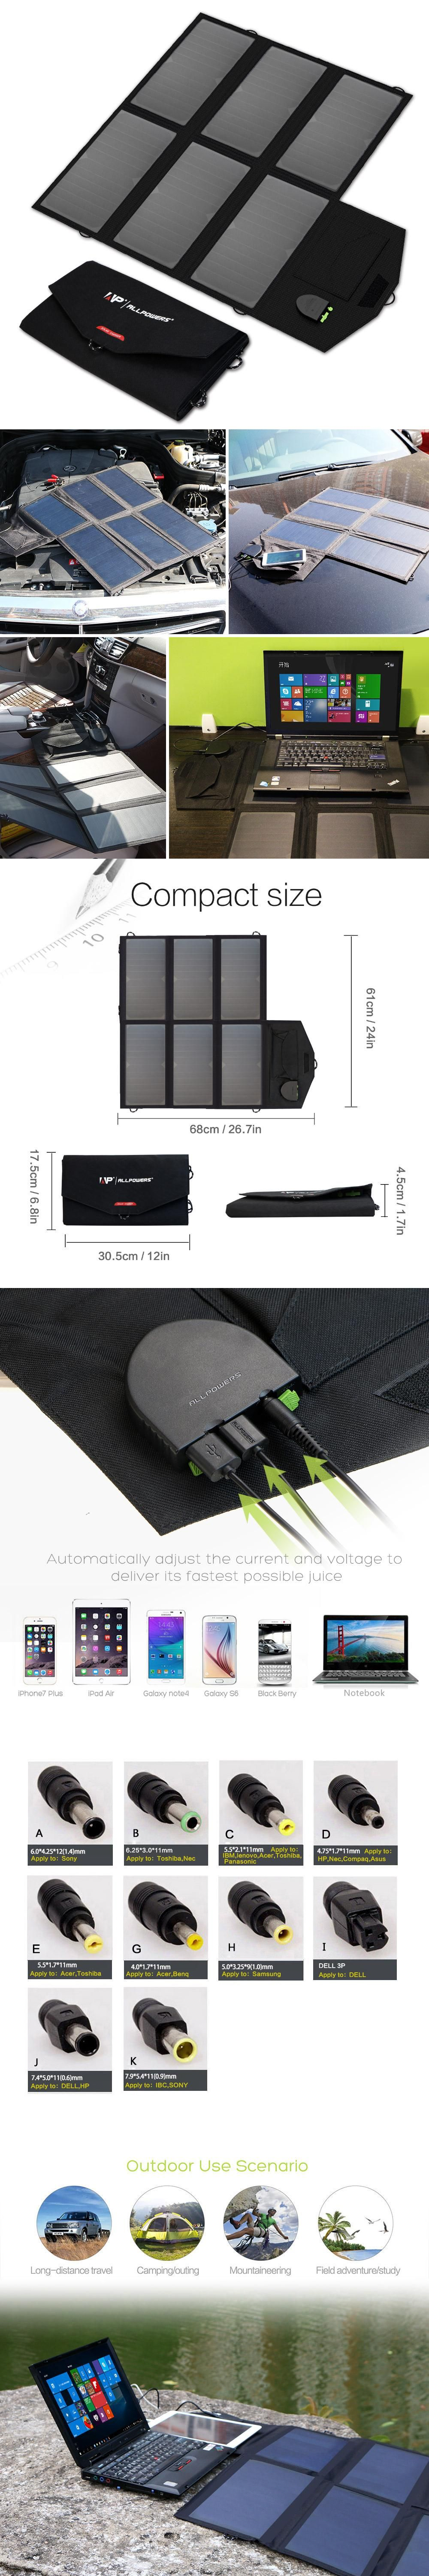 dual usb dc portable solar charger foldable solar panel charger for